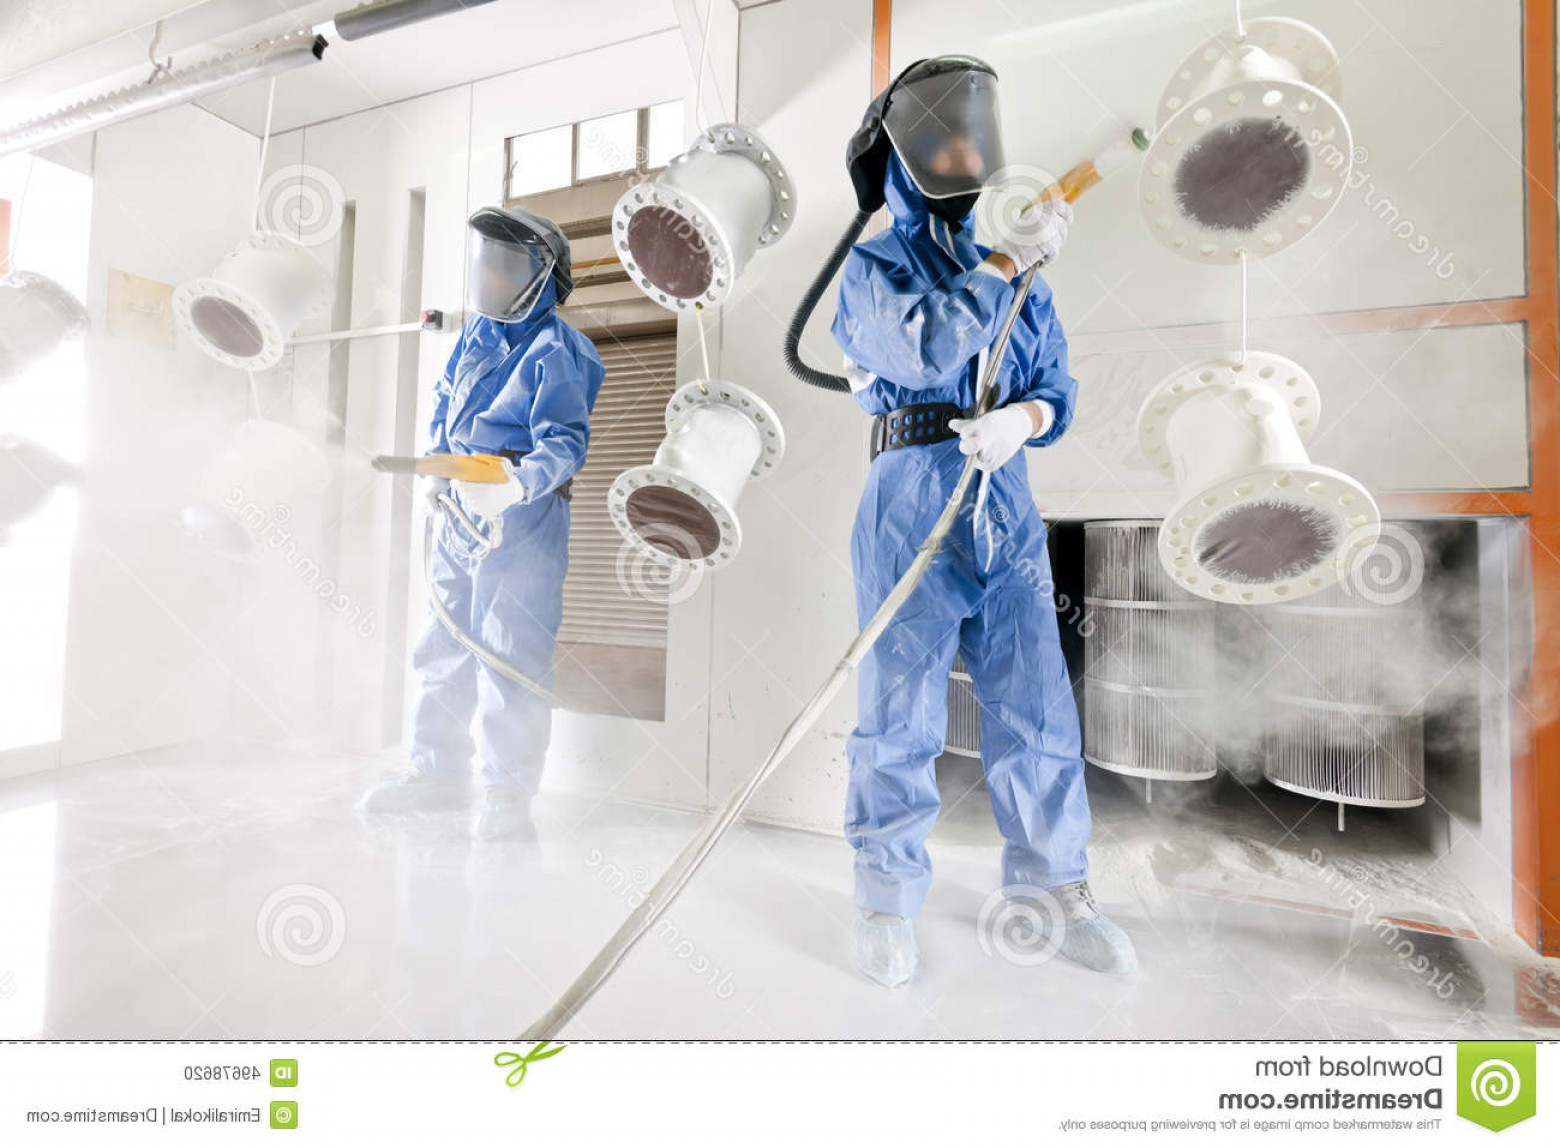 Powder Coating Vector Art: Stock Photo Powder Coating Special Camera Worker Wearing Protective Wear Performing Metal Details Industrial Image